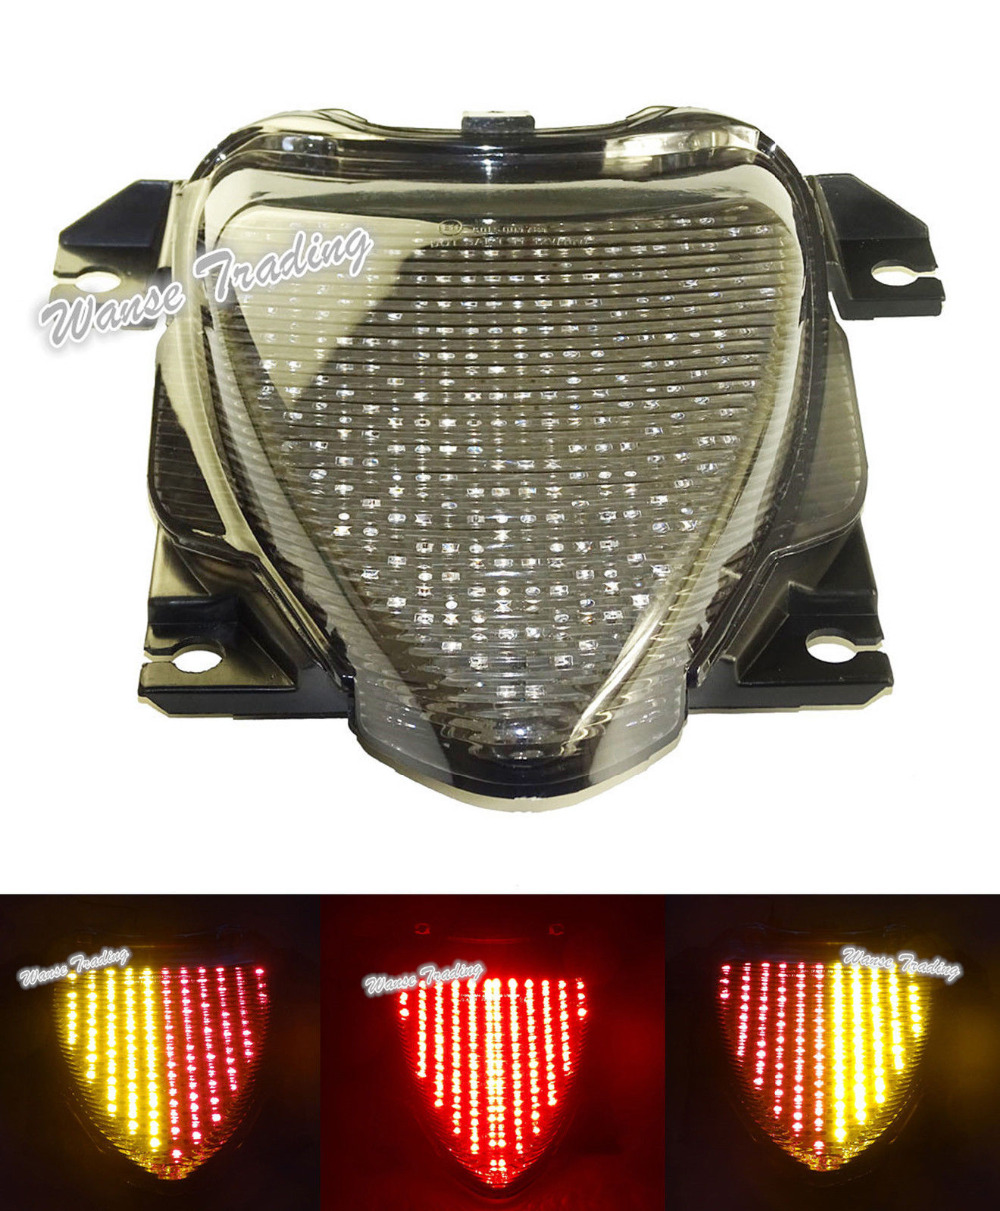 For SUZUKI Boulevard M109R VZR1800 M1800R 2006 2007 2008-2015 E-Mark Rear Tail Light Brake Turn Signals Integrated LED Light aftermarket free shipping motorcycle parts eliminator tidy tail for 2006 2007 2008 fz6 fazer 2007 2008b lack